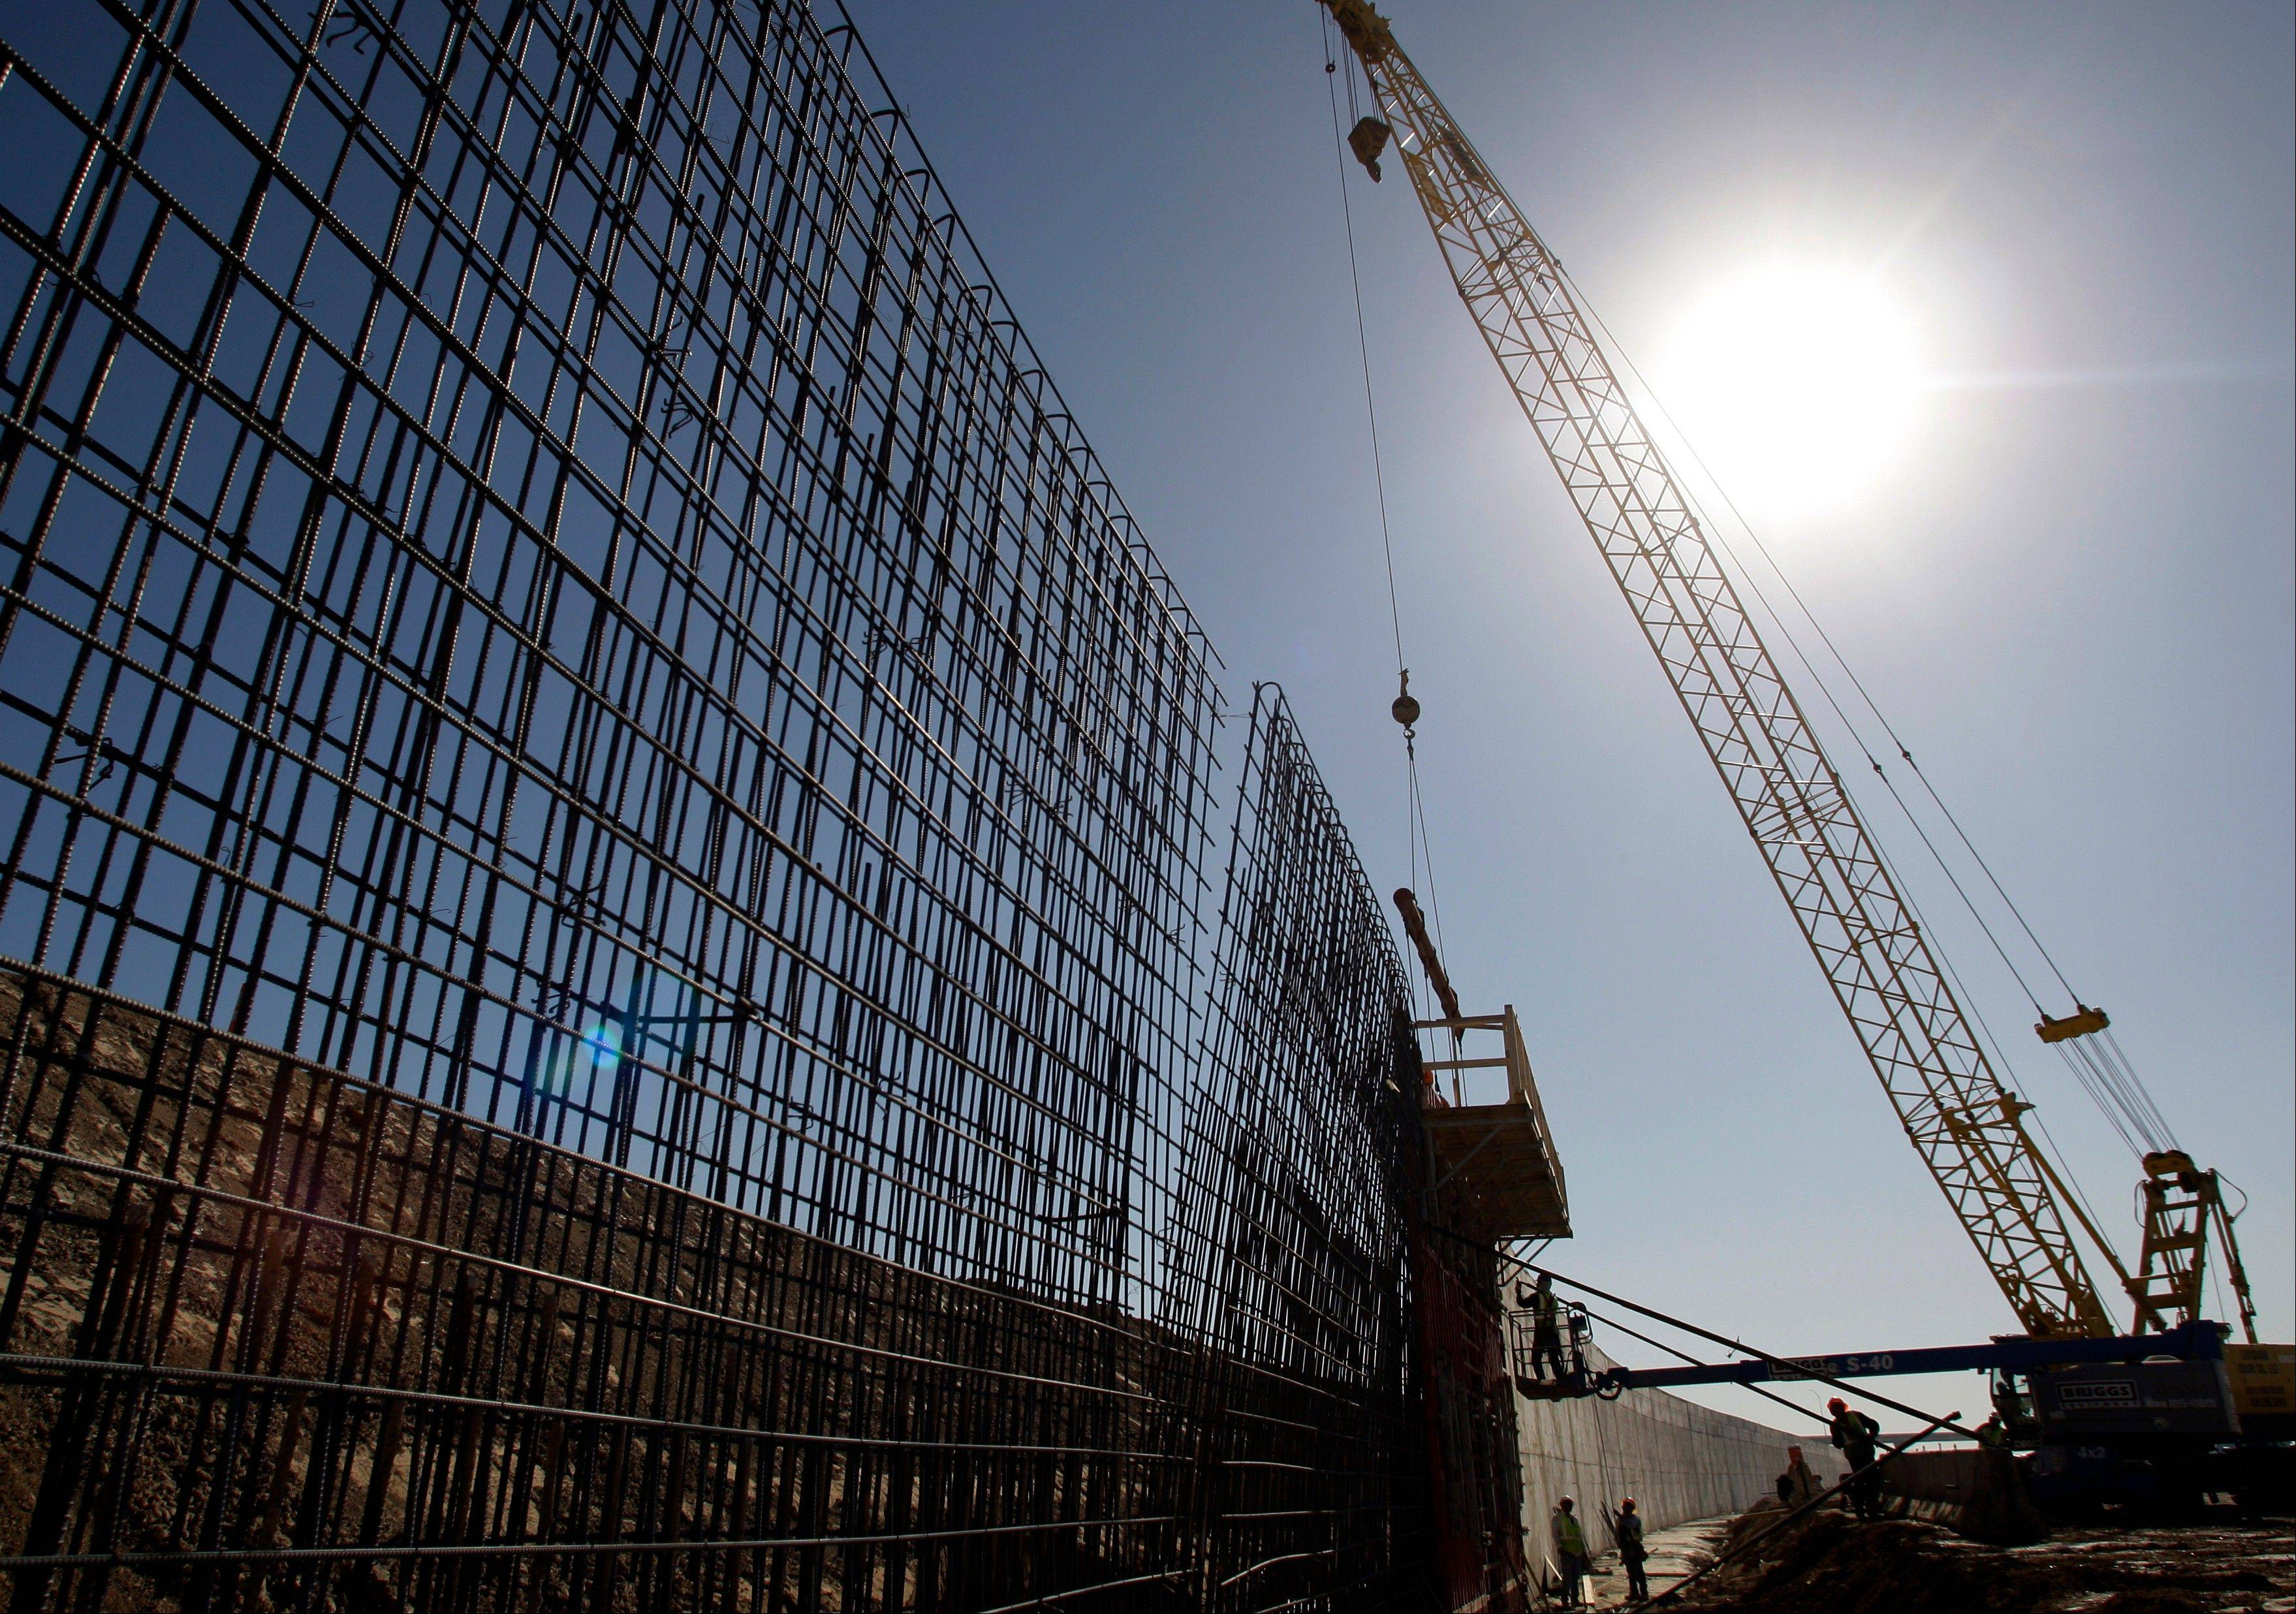 In this Feb. 4, 2009 file photo, the sun beats down on construction workers constructing the border wall in Granjeno, Texas. If Congress agrees on a comprehensive immigration reform bill, it will probably include a requirement to erect fencing that would wrap more of the nation�s nearly 2,000-mile Southwest border in tall steel columns.